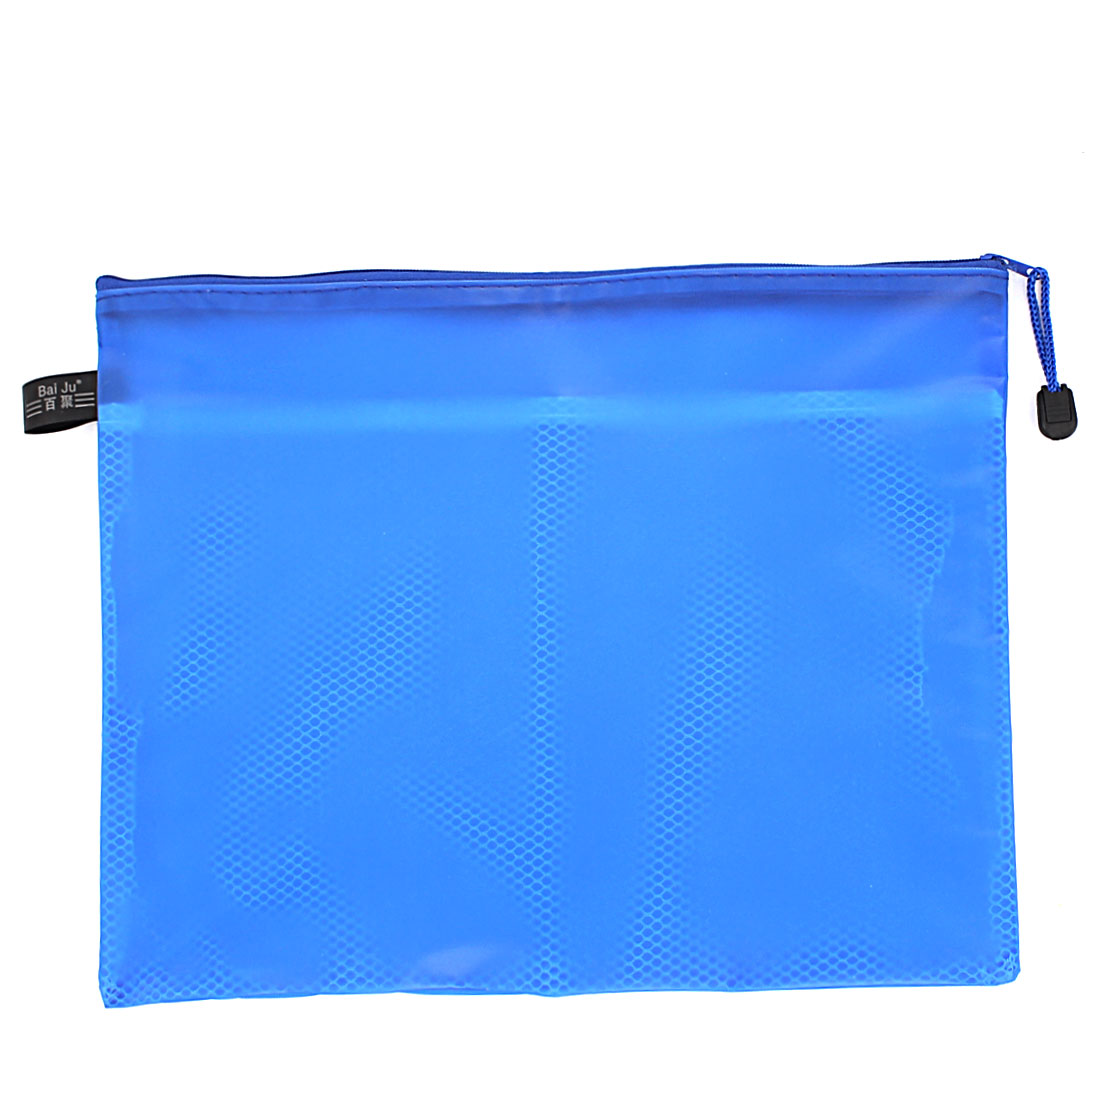 Blue Zipper Closure Double Layers Paper Document File Pen Bag Folder Holder Organizer Storage w Strap